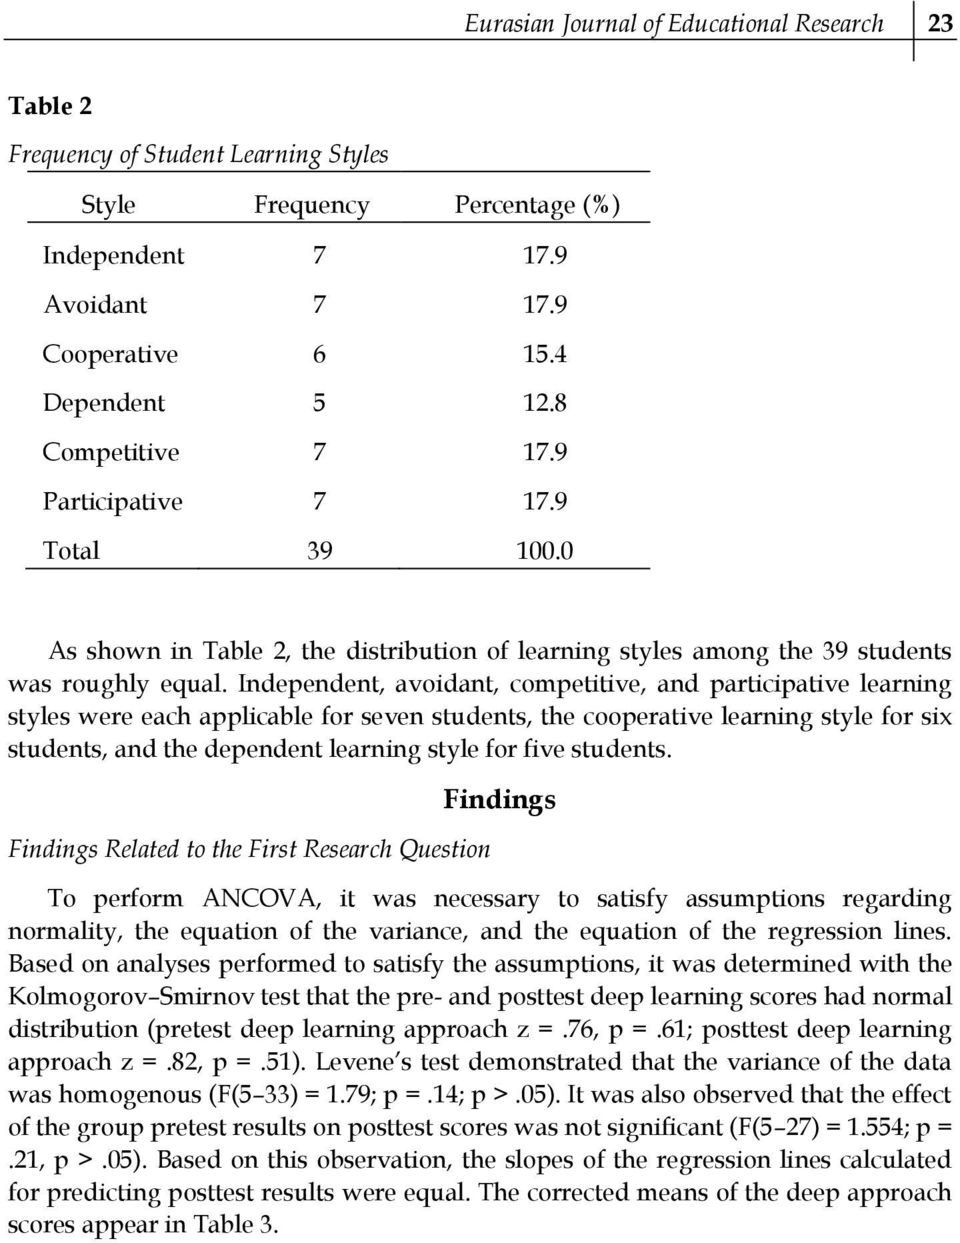 Independent, avoidant, competitive, and participative learning styles were each applicable for seven students, the cooperative learning style for six students, and the dependent learning style for